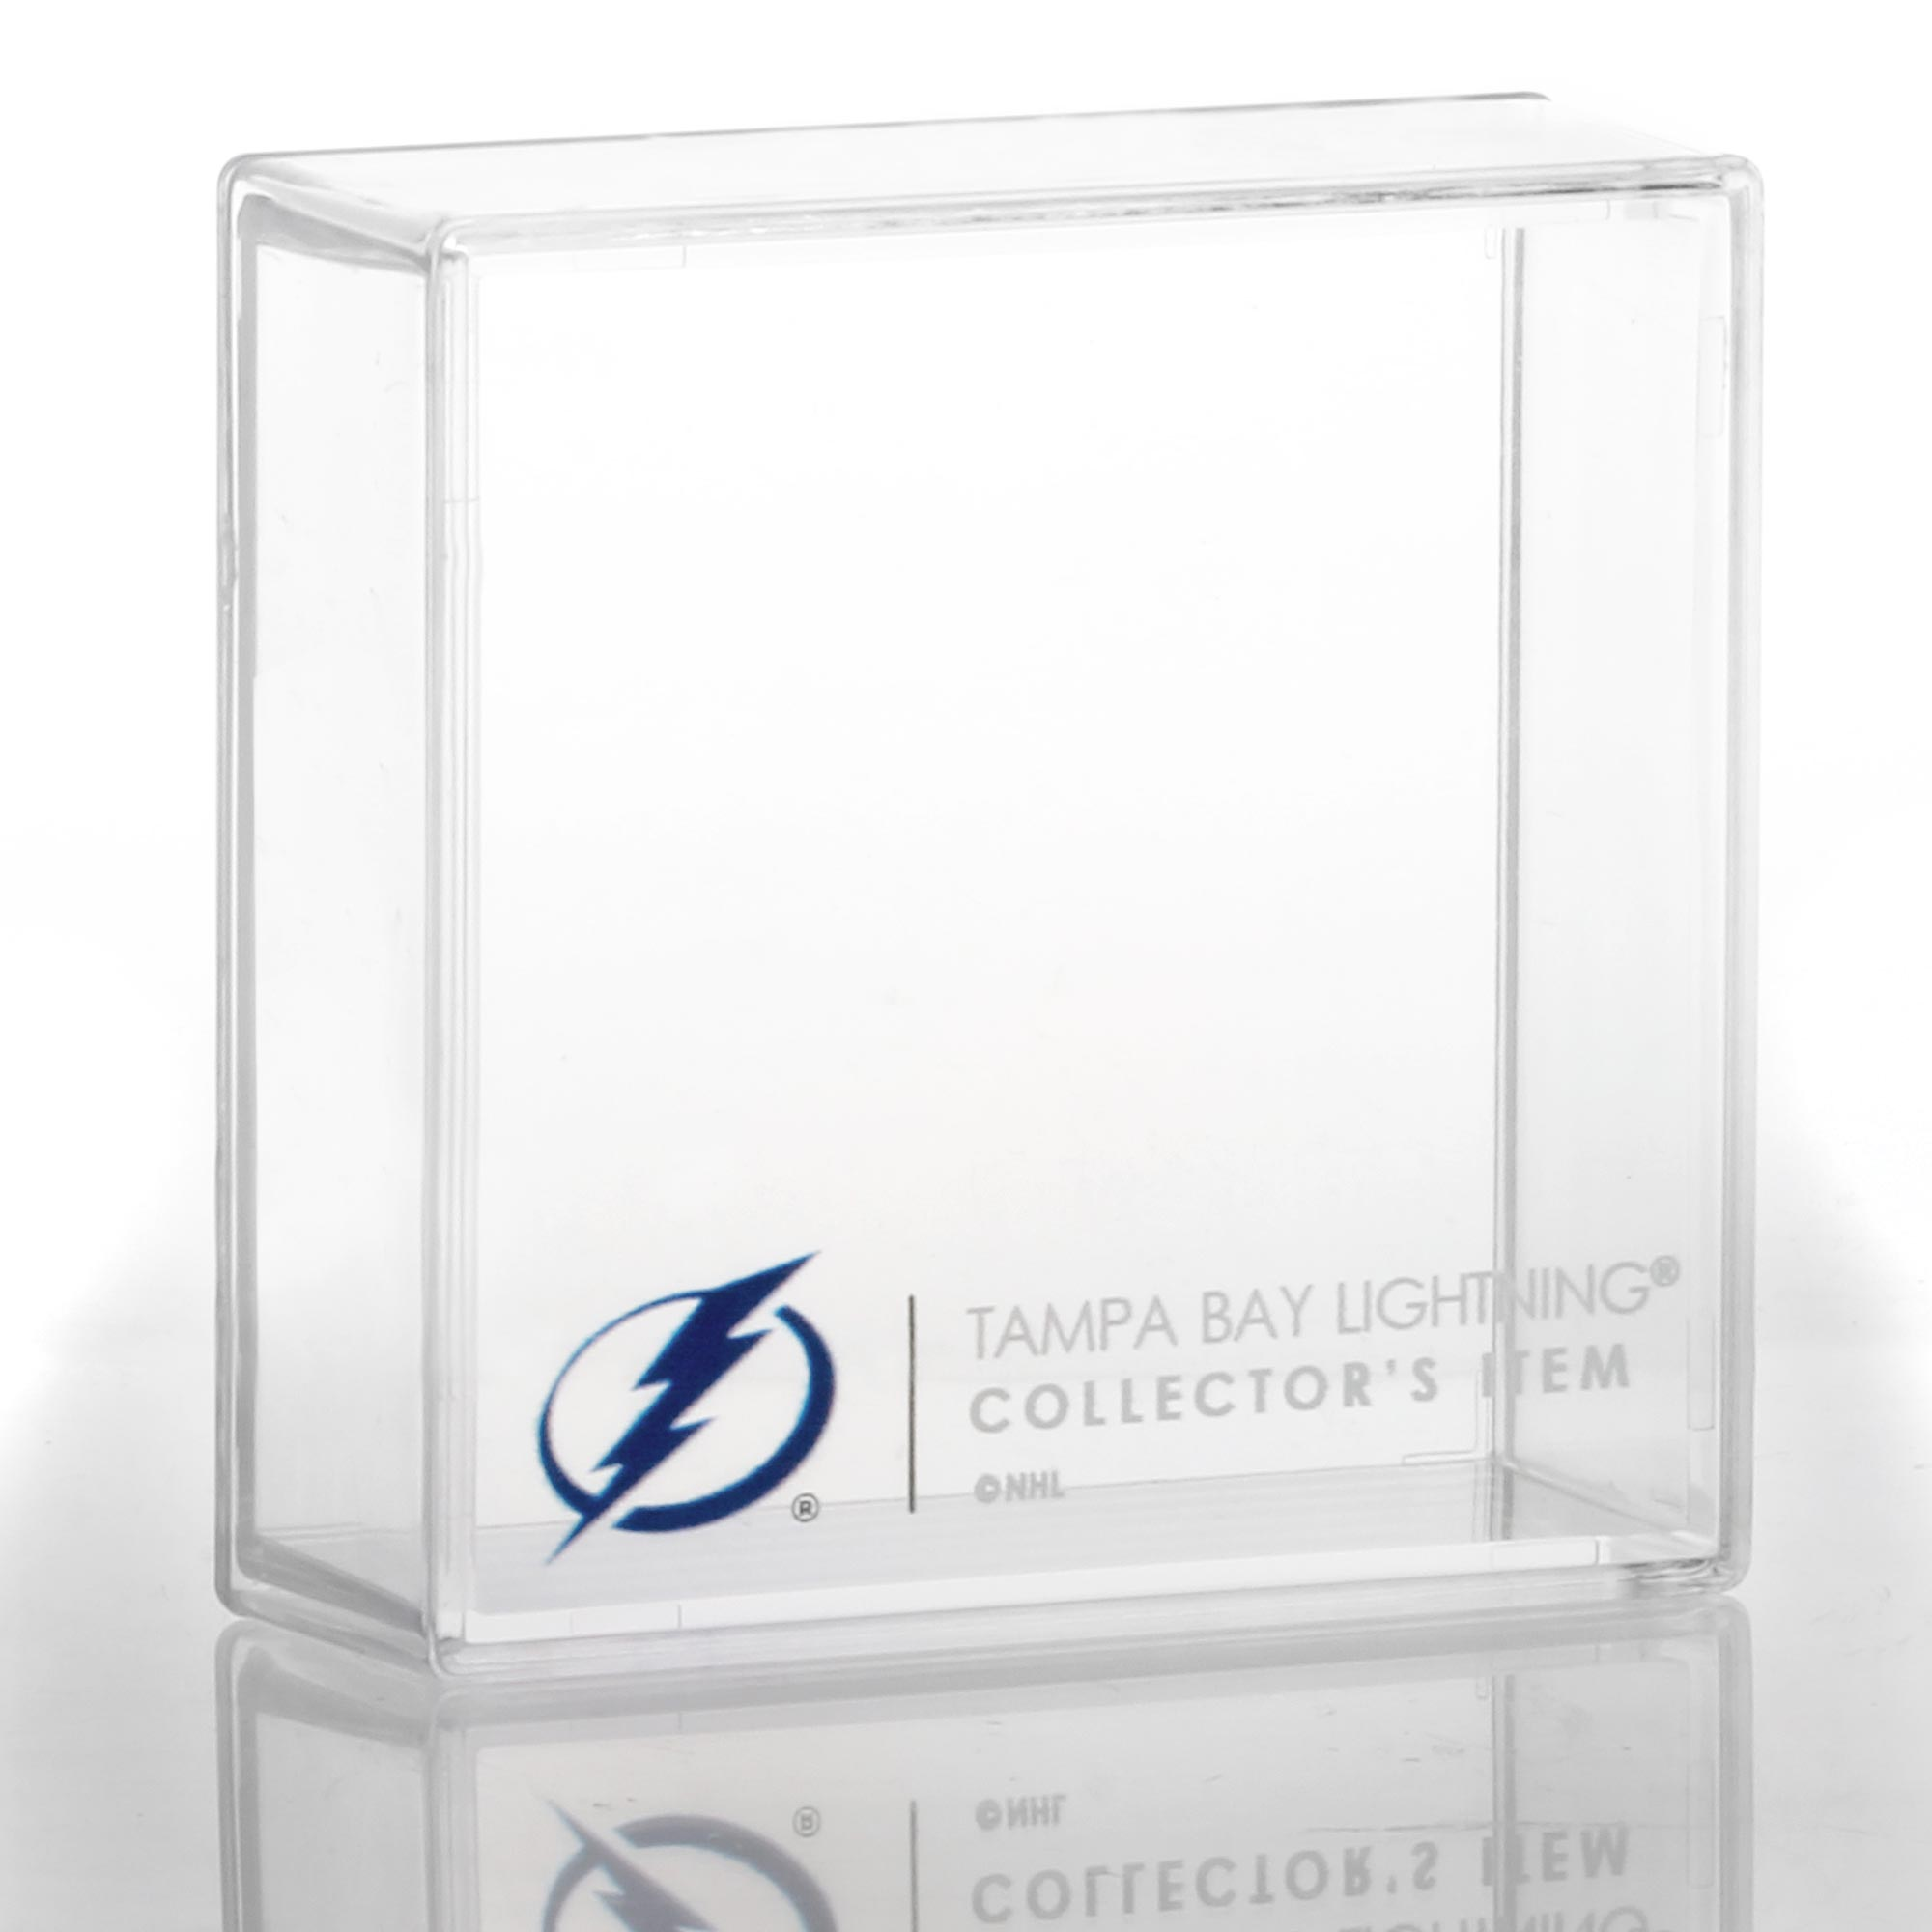 Tampa Bay Lightning Sher-Wood Puck Holder Cube - No Size